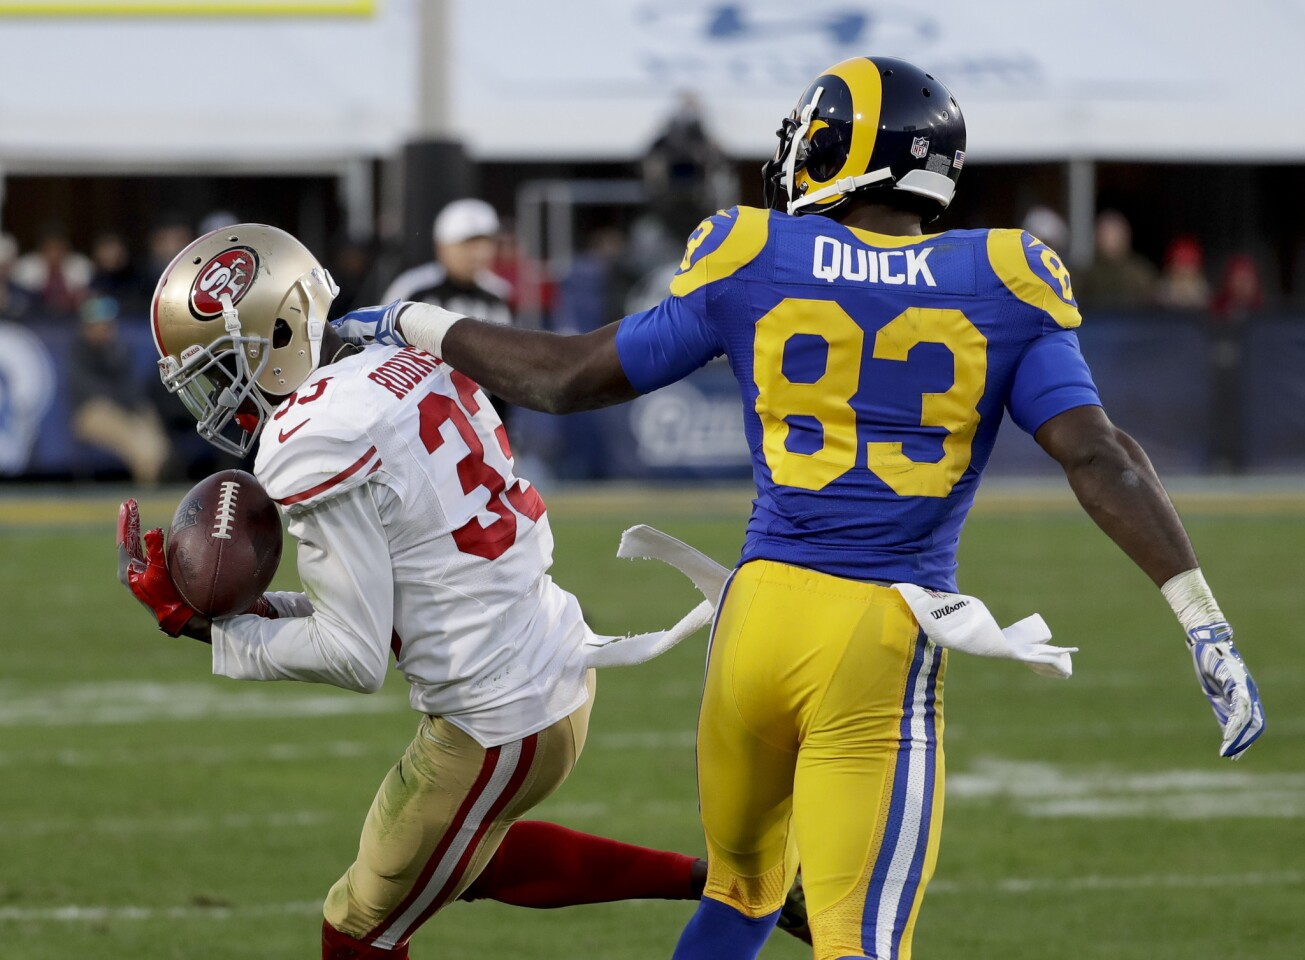 San Francisco 49ers cornerback Rashard Robinson, left, intercepts a pass intended for Los Angeles Rams wide receiver Brian Quick during the second half of an NFL football game Saturday, Dec. 24, 2016, in Los Angeles. (AP Photo/Rick Scuteri)